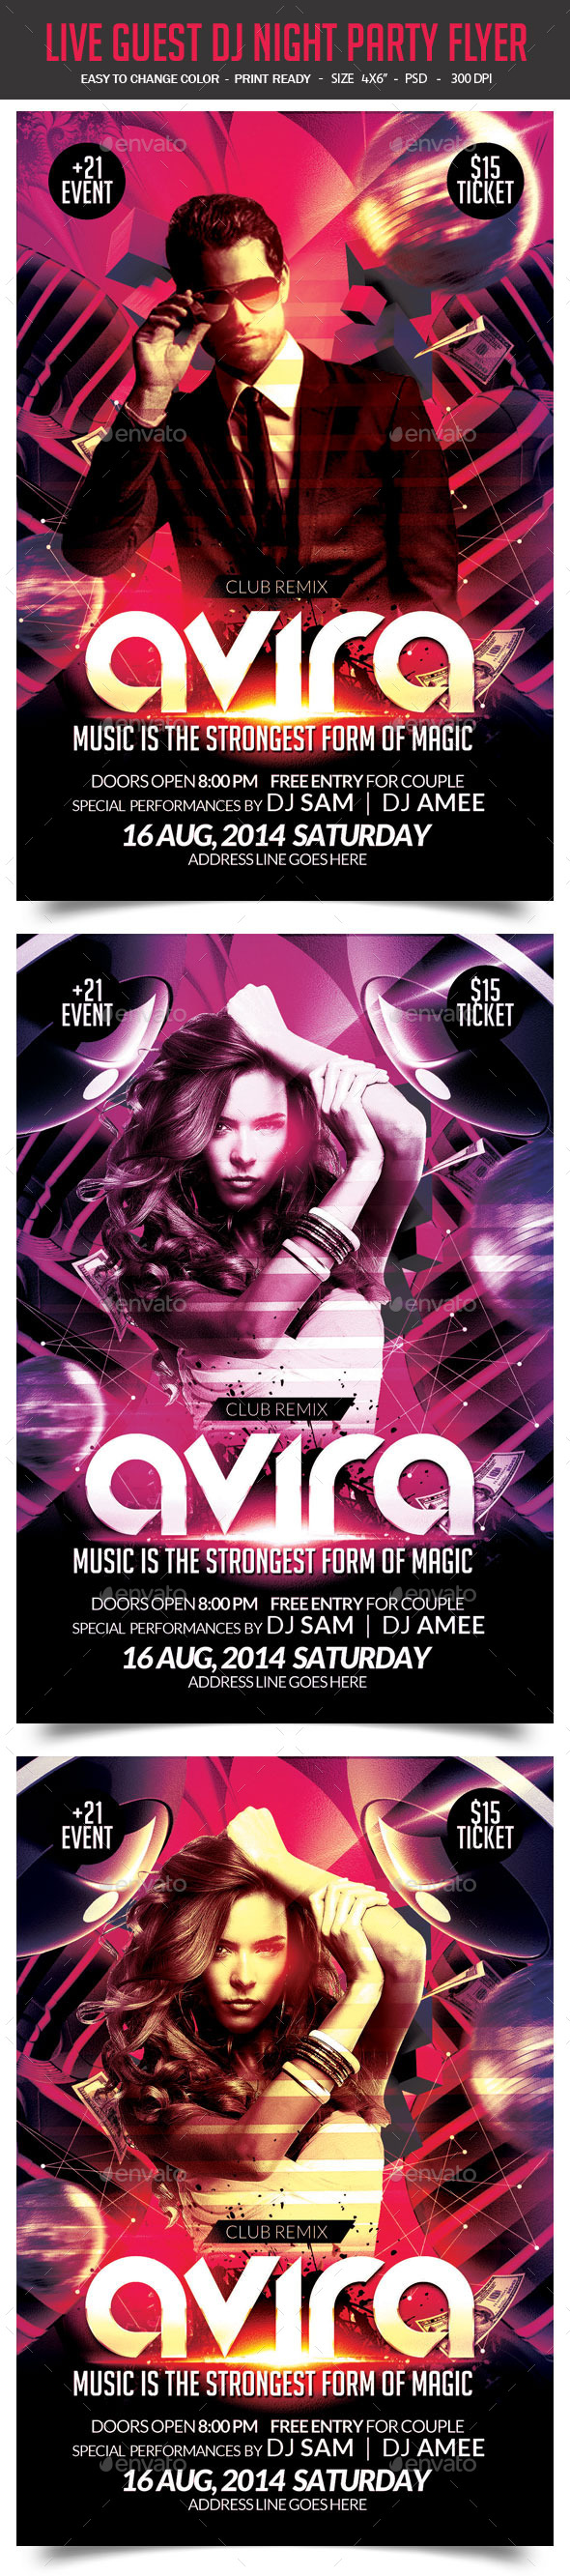 Live Guest DJ Flyer Template - Clubs & Parties Events